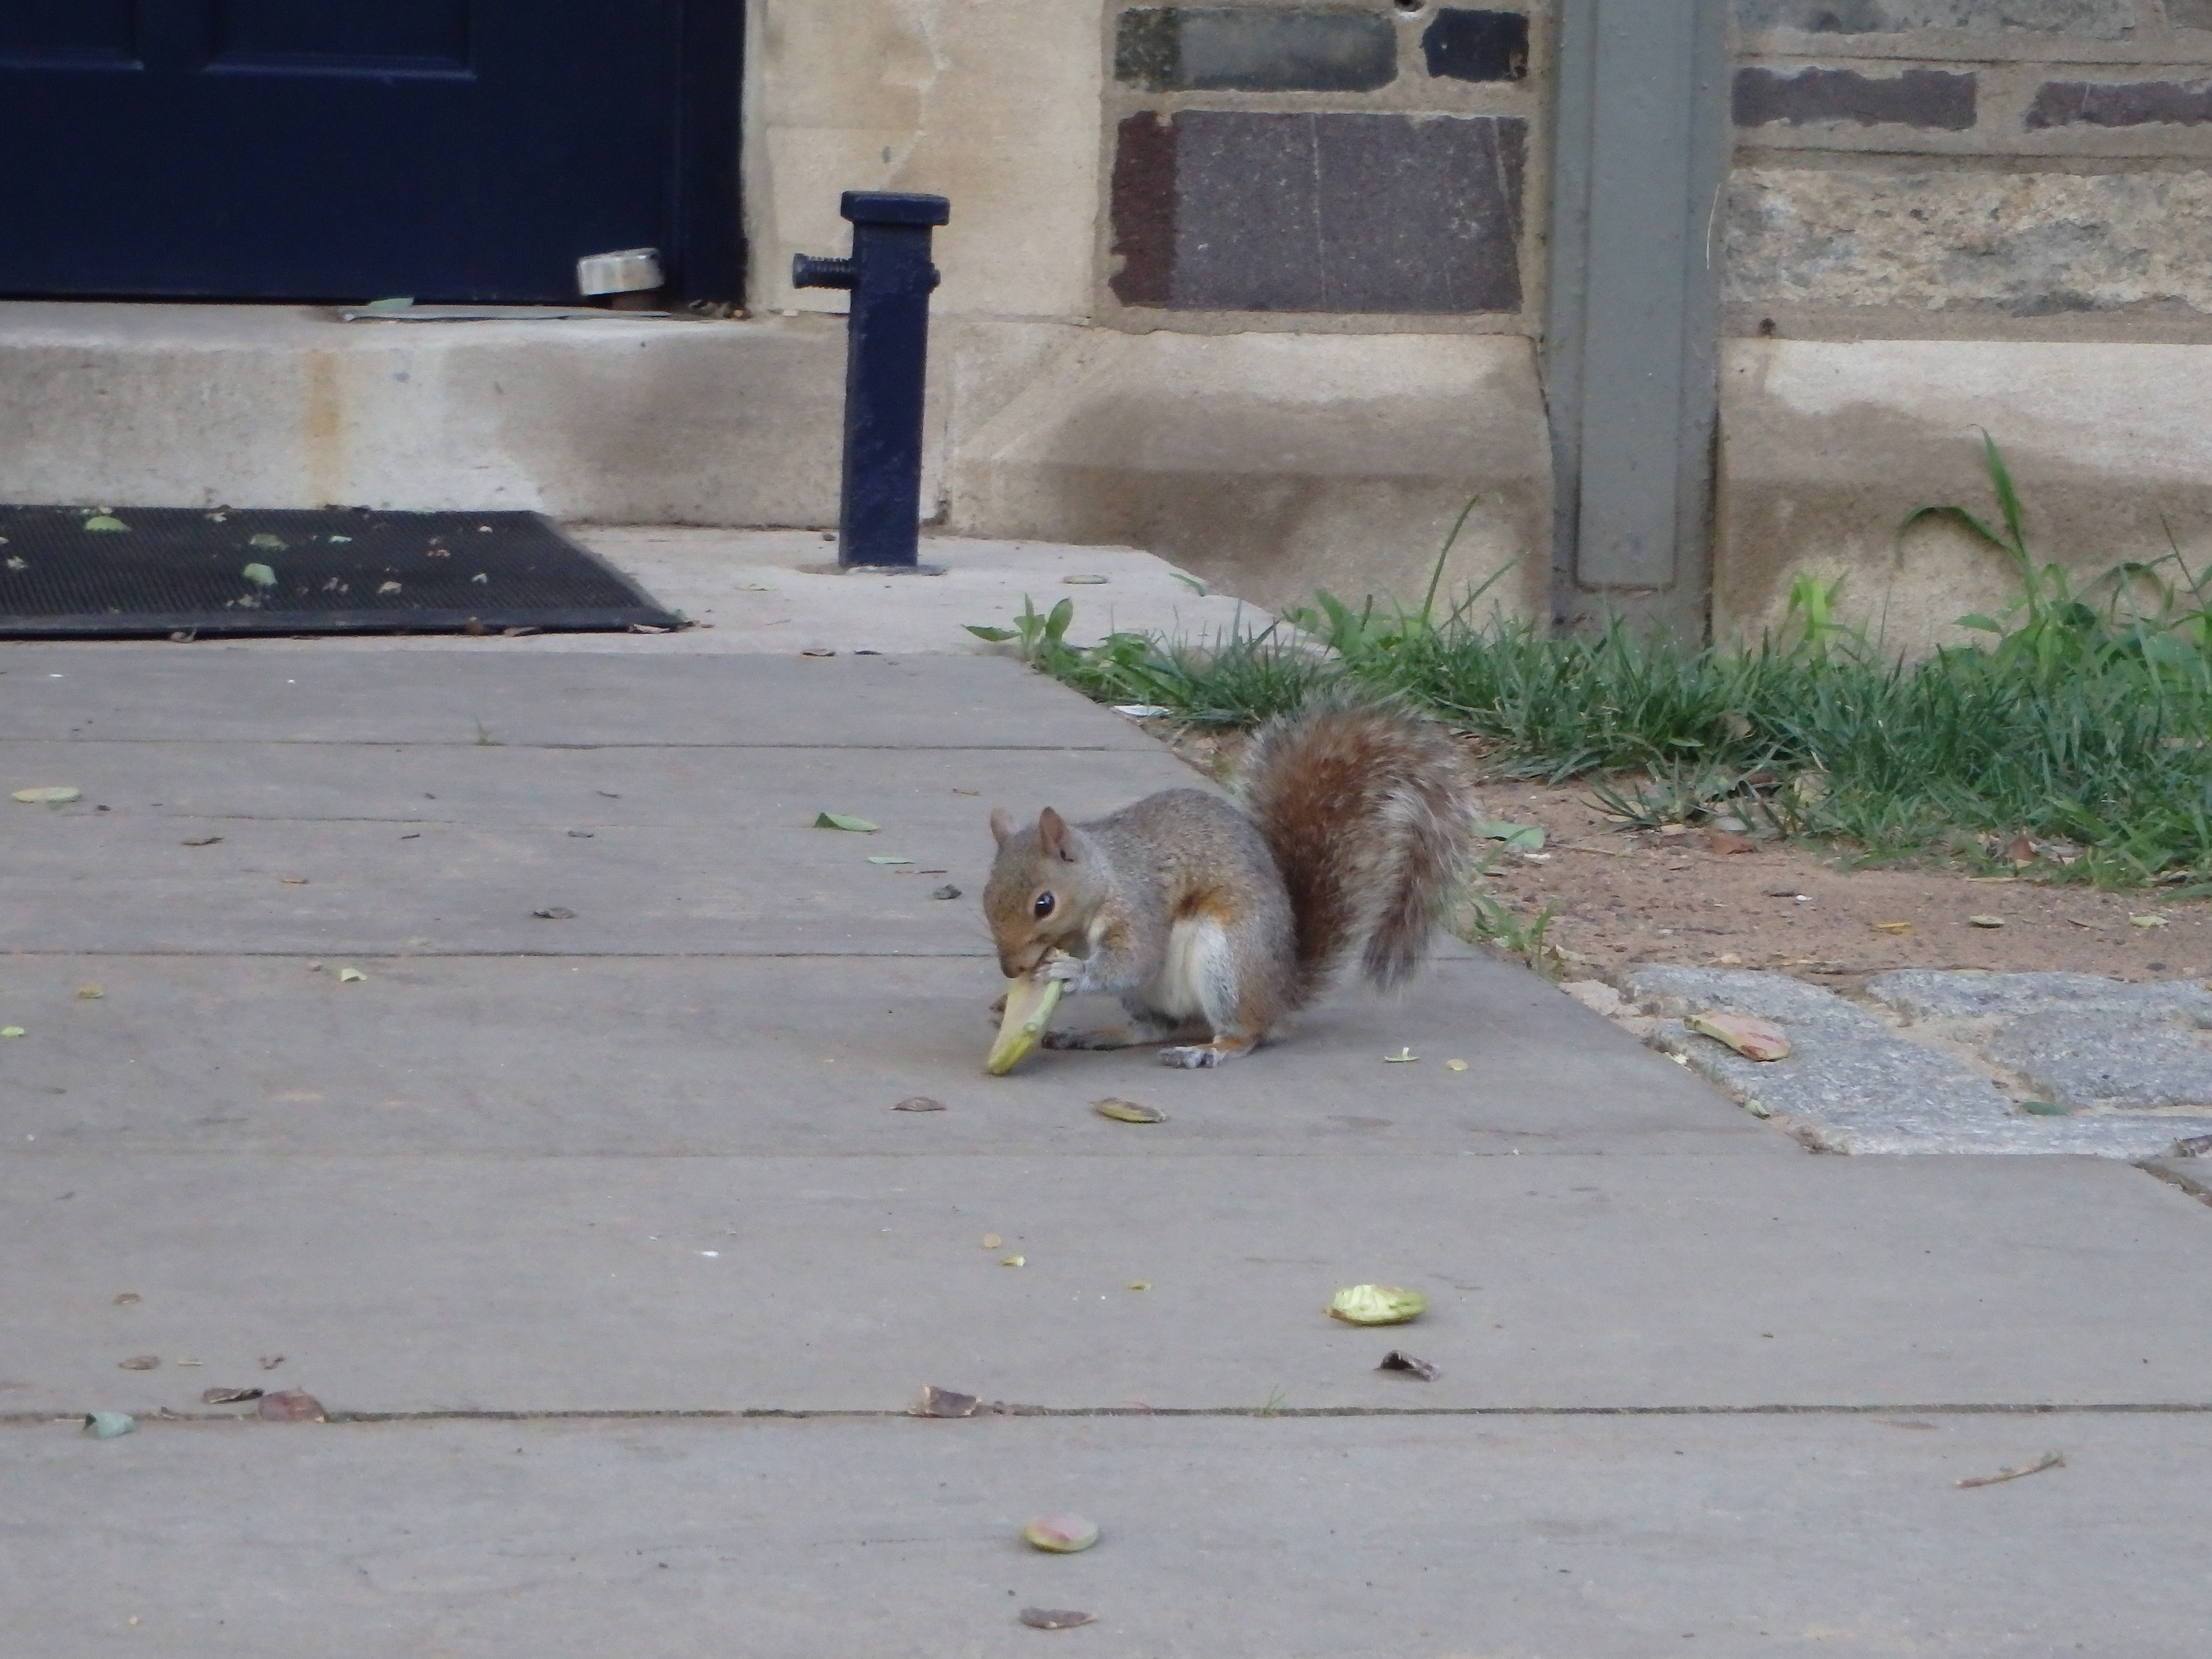 A squirrel eats on a Princeton walkway